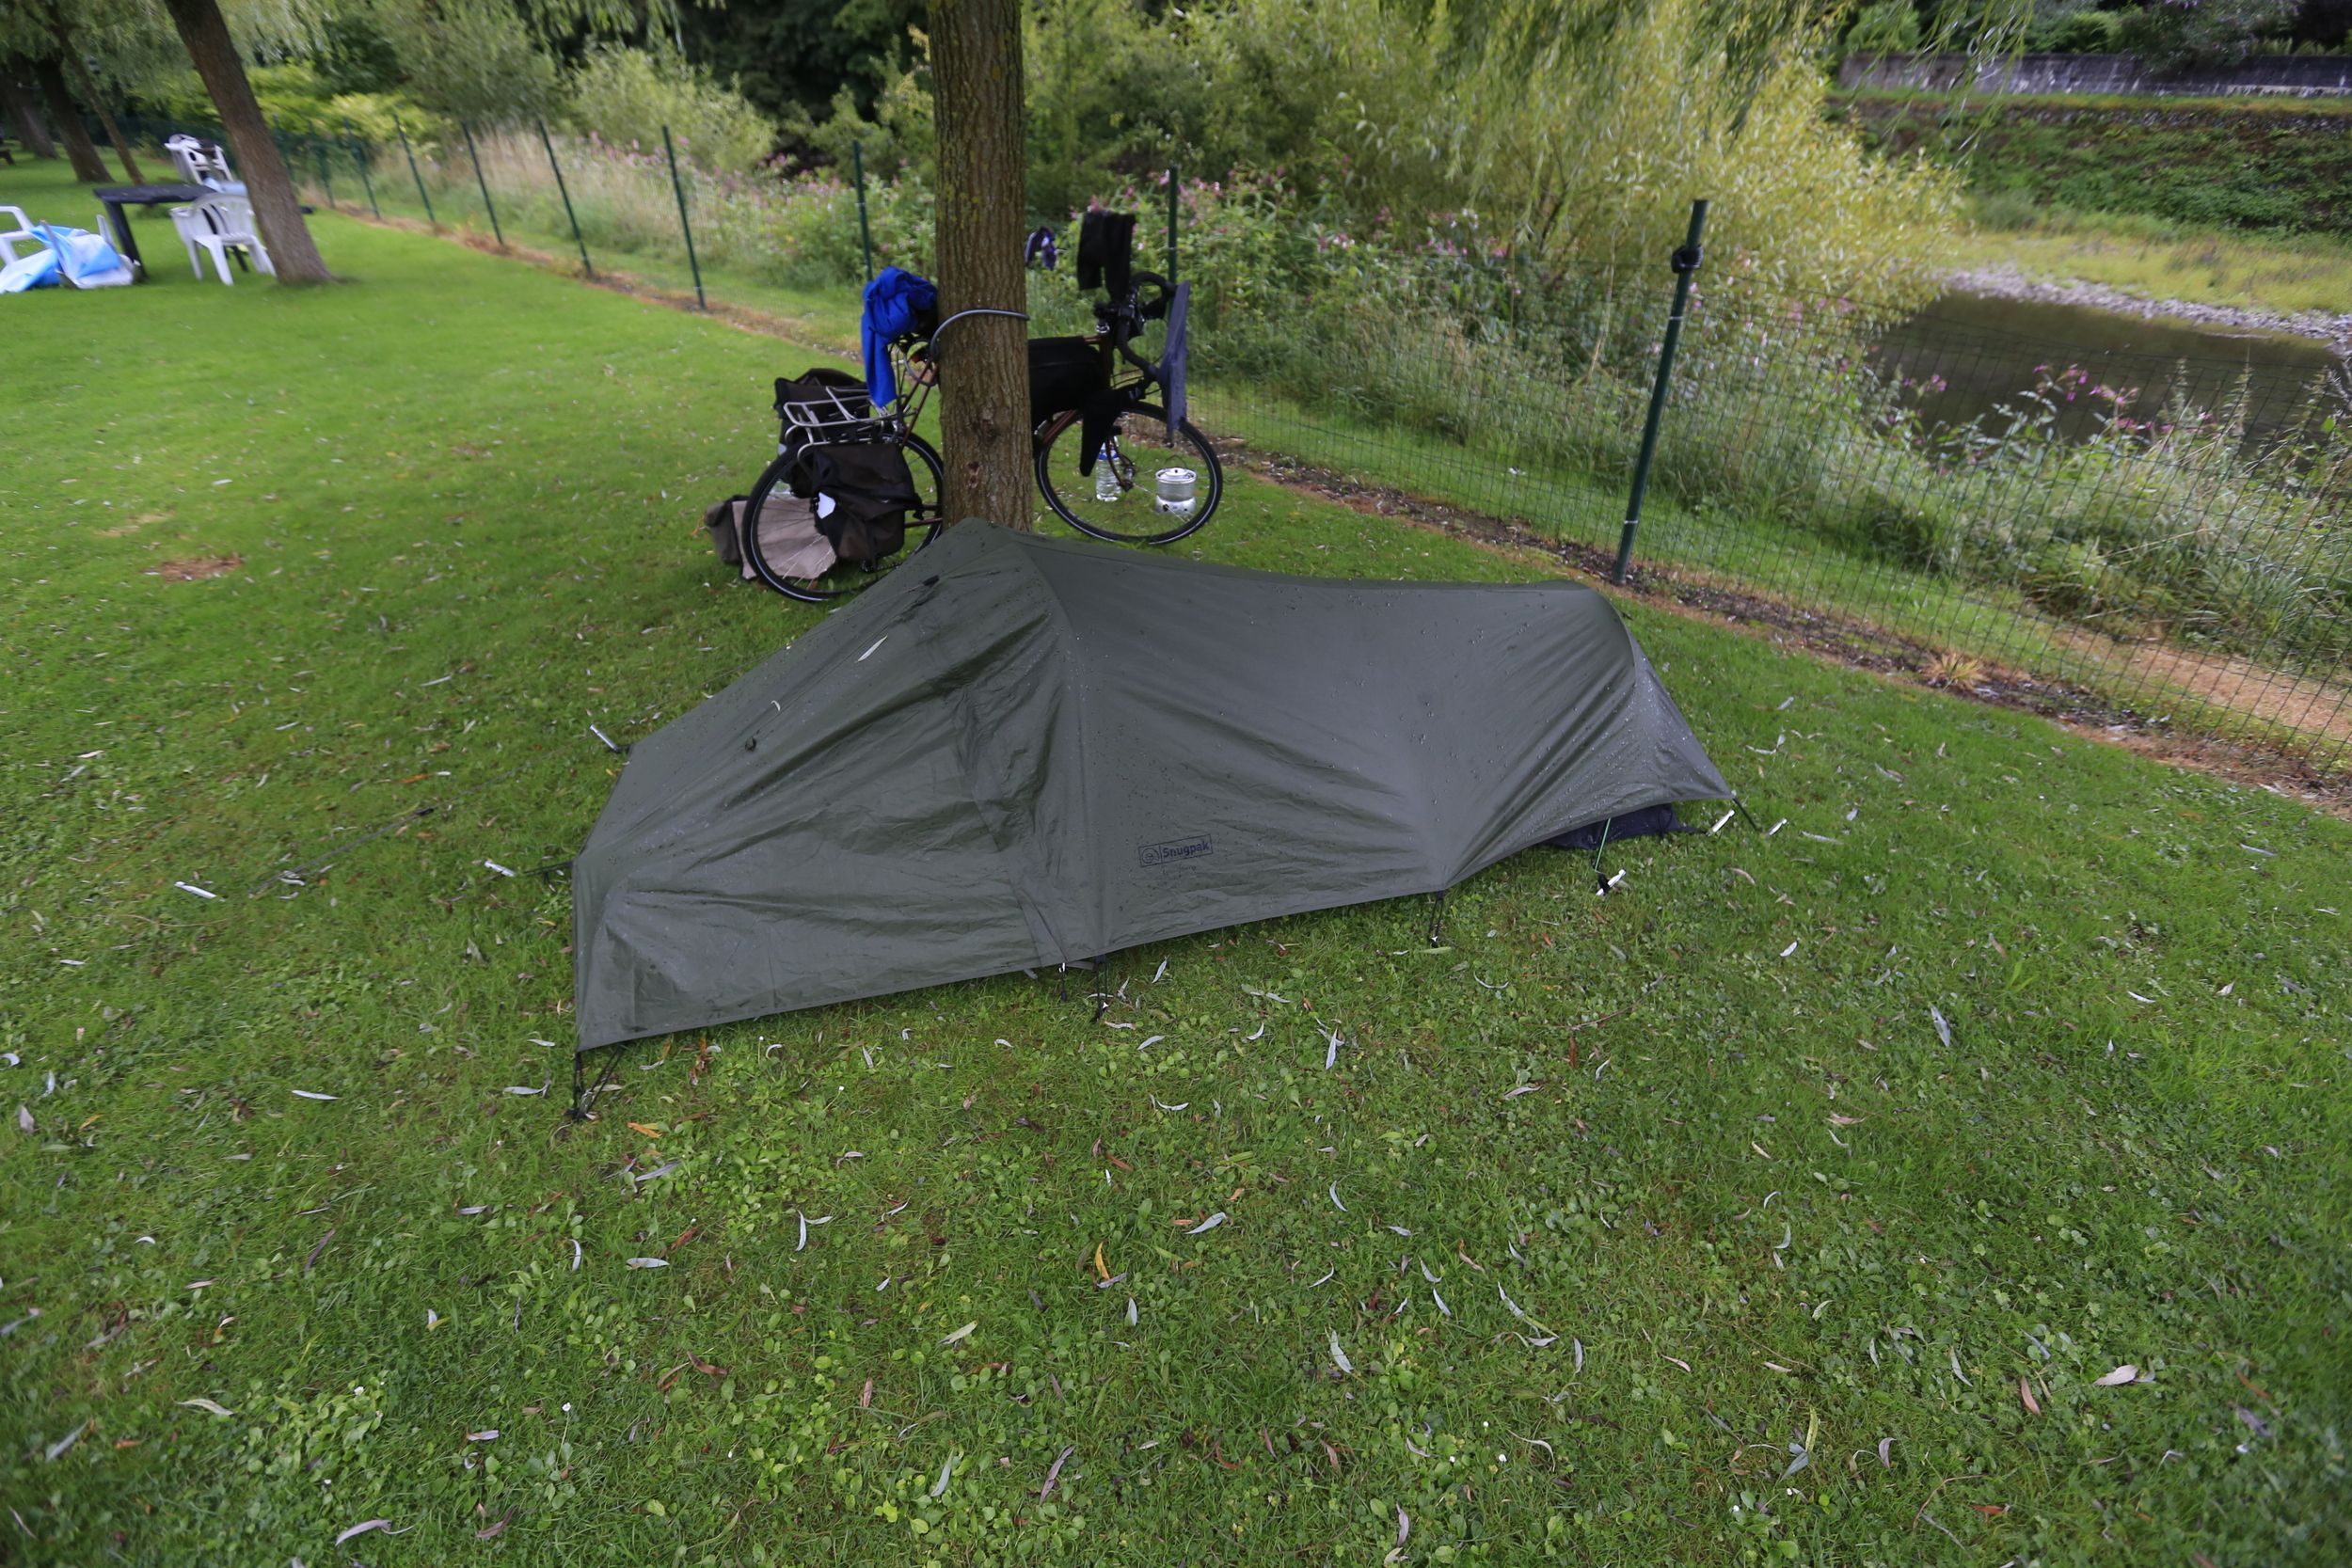 snugpak, snugpack ionosphere, one-man tent, tent, camping, bikepacking tent, travel, cycle, ride, cycle touring tent, lightweight bikepacking gear